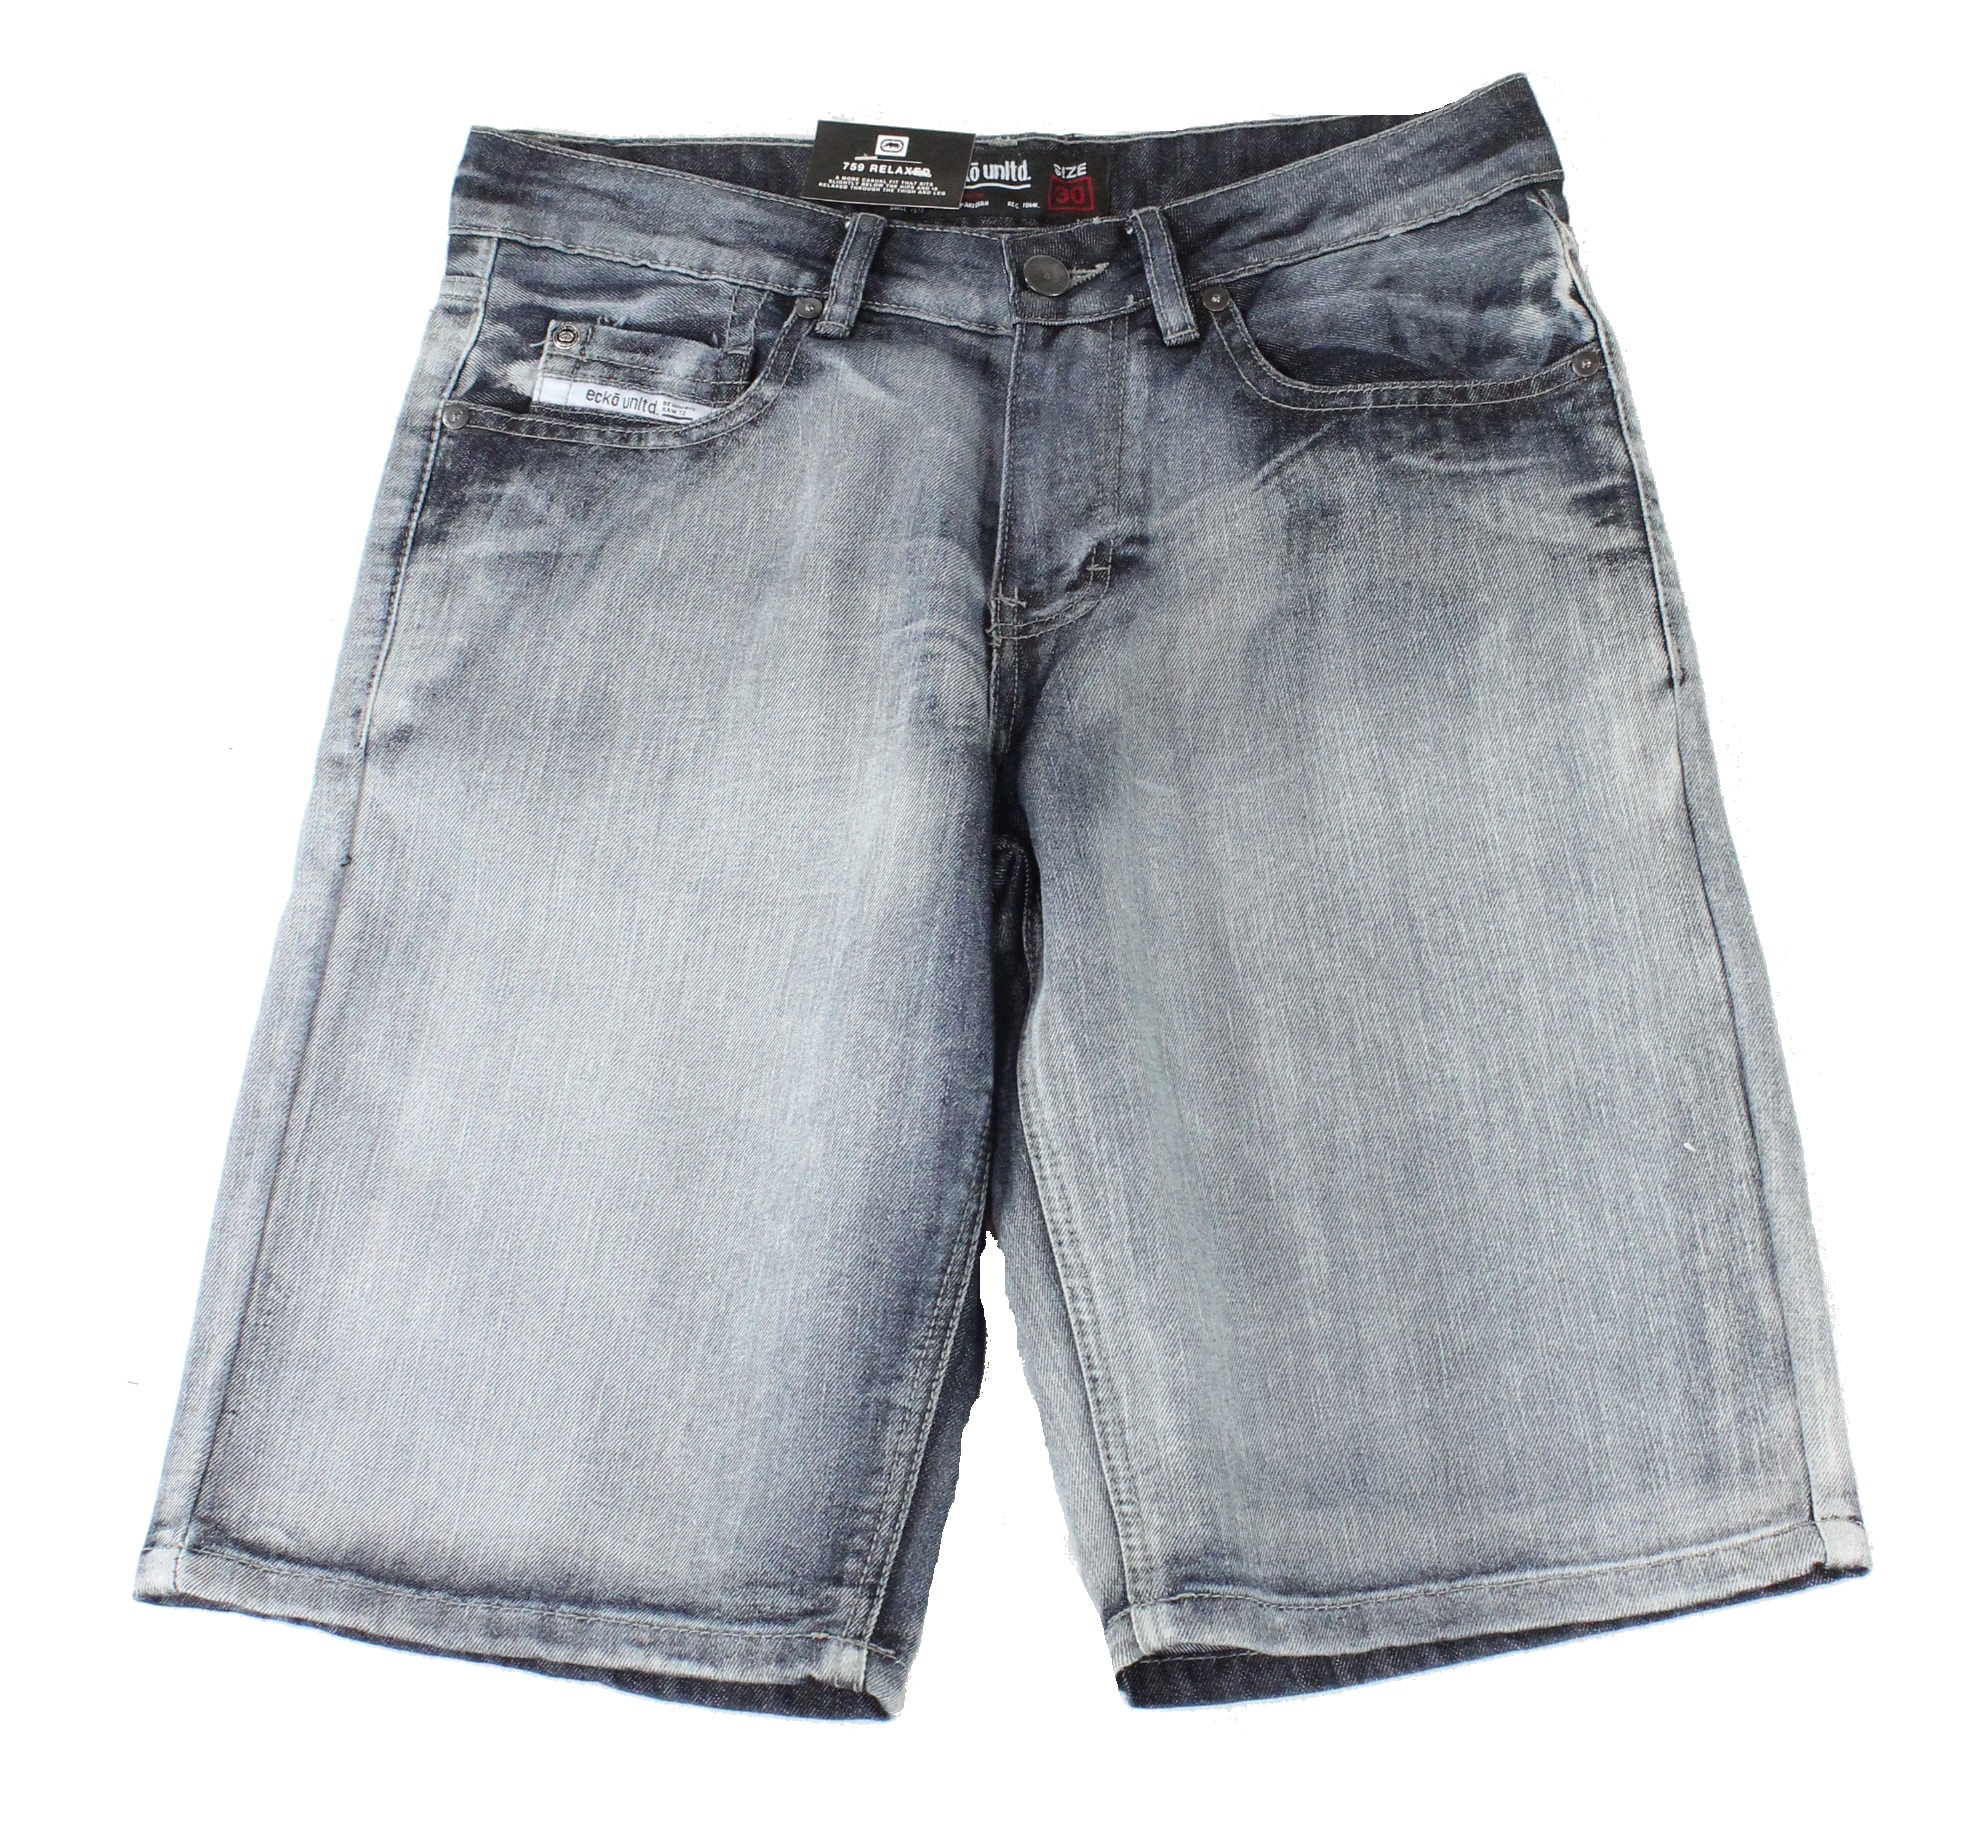 New-Ecko-Unltd-Mens-Shorts-Blue-Size-38-Denim-759-Relaxed-Logo-Embossed-39-174